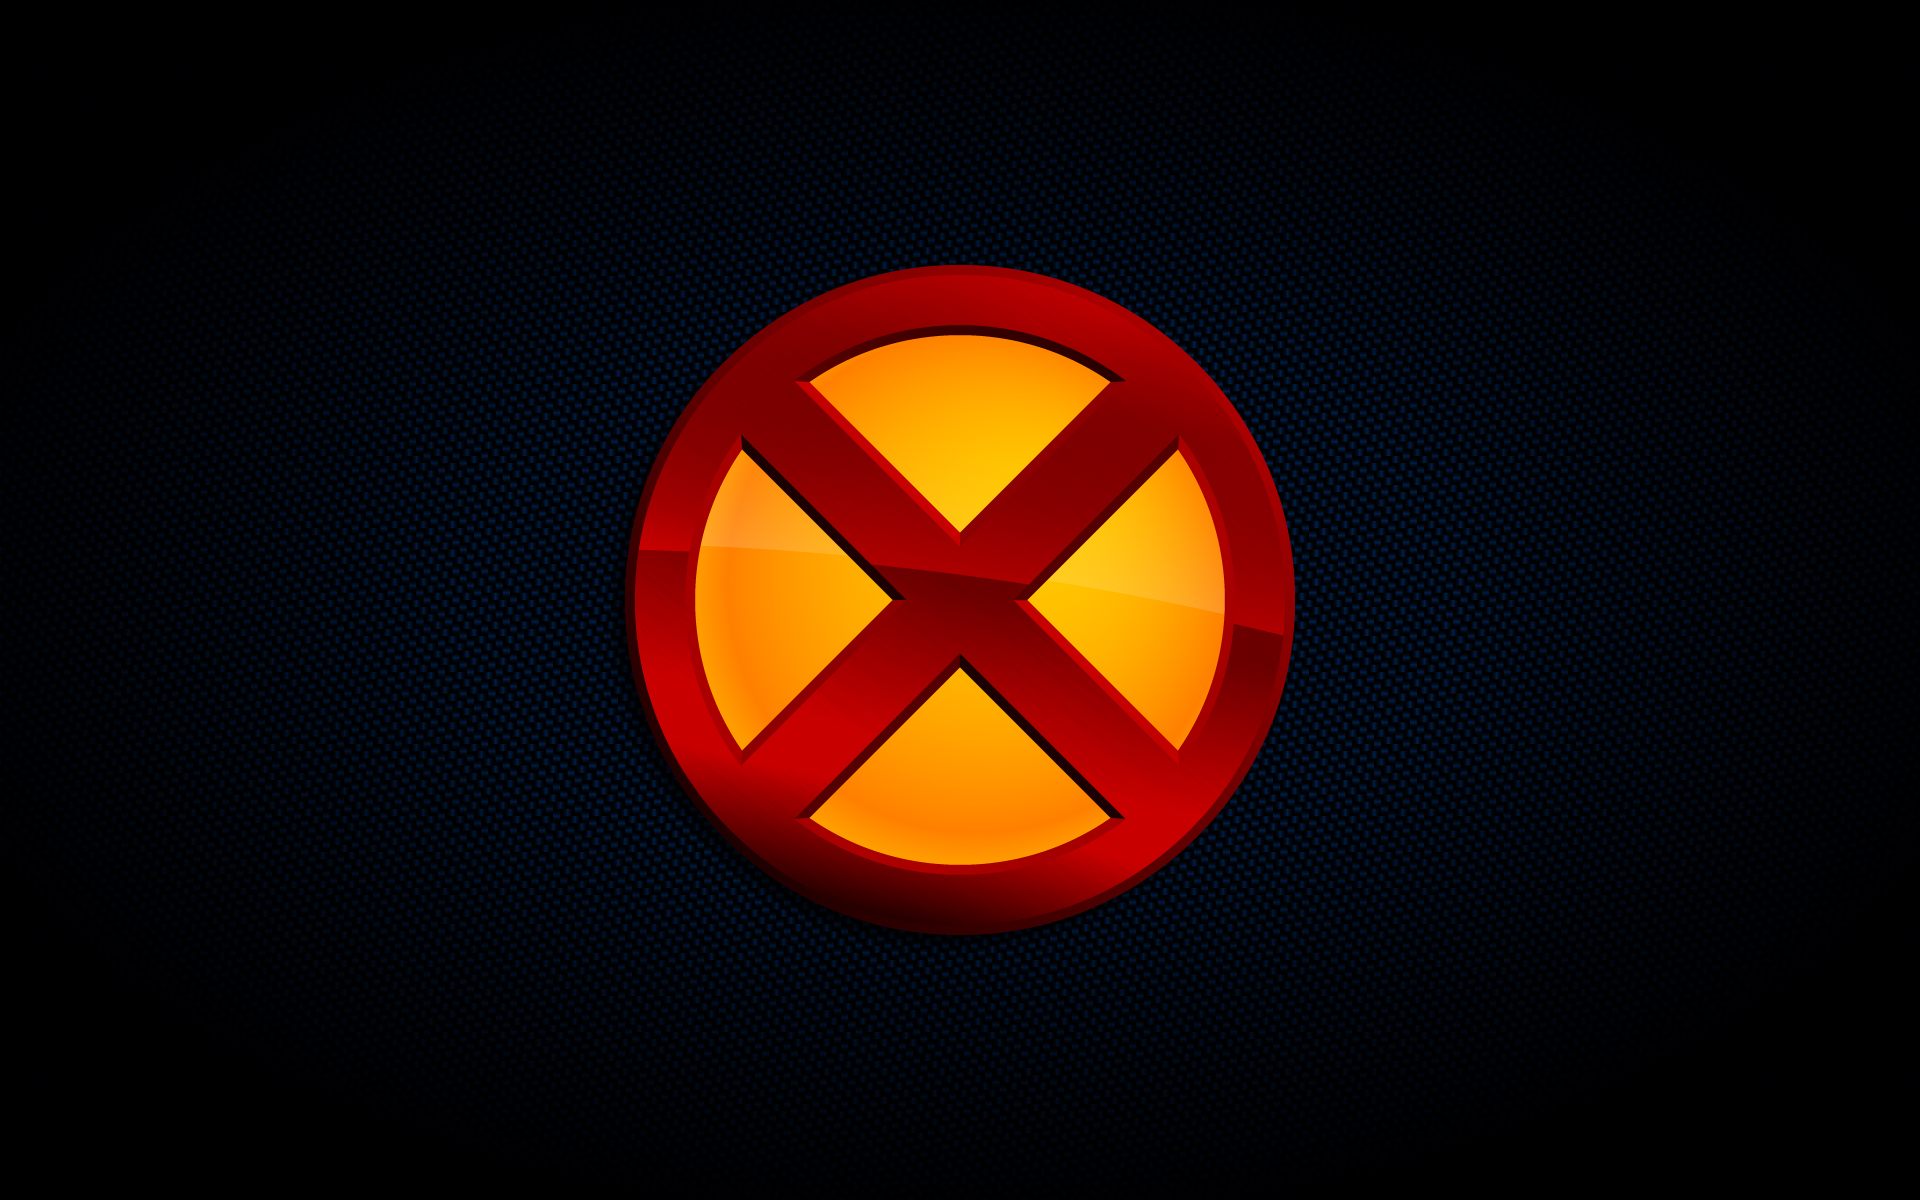 Download X Men Logos Wallpaper 1920x1200 Wallpoper 320808 1920x1200